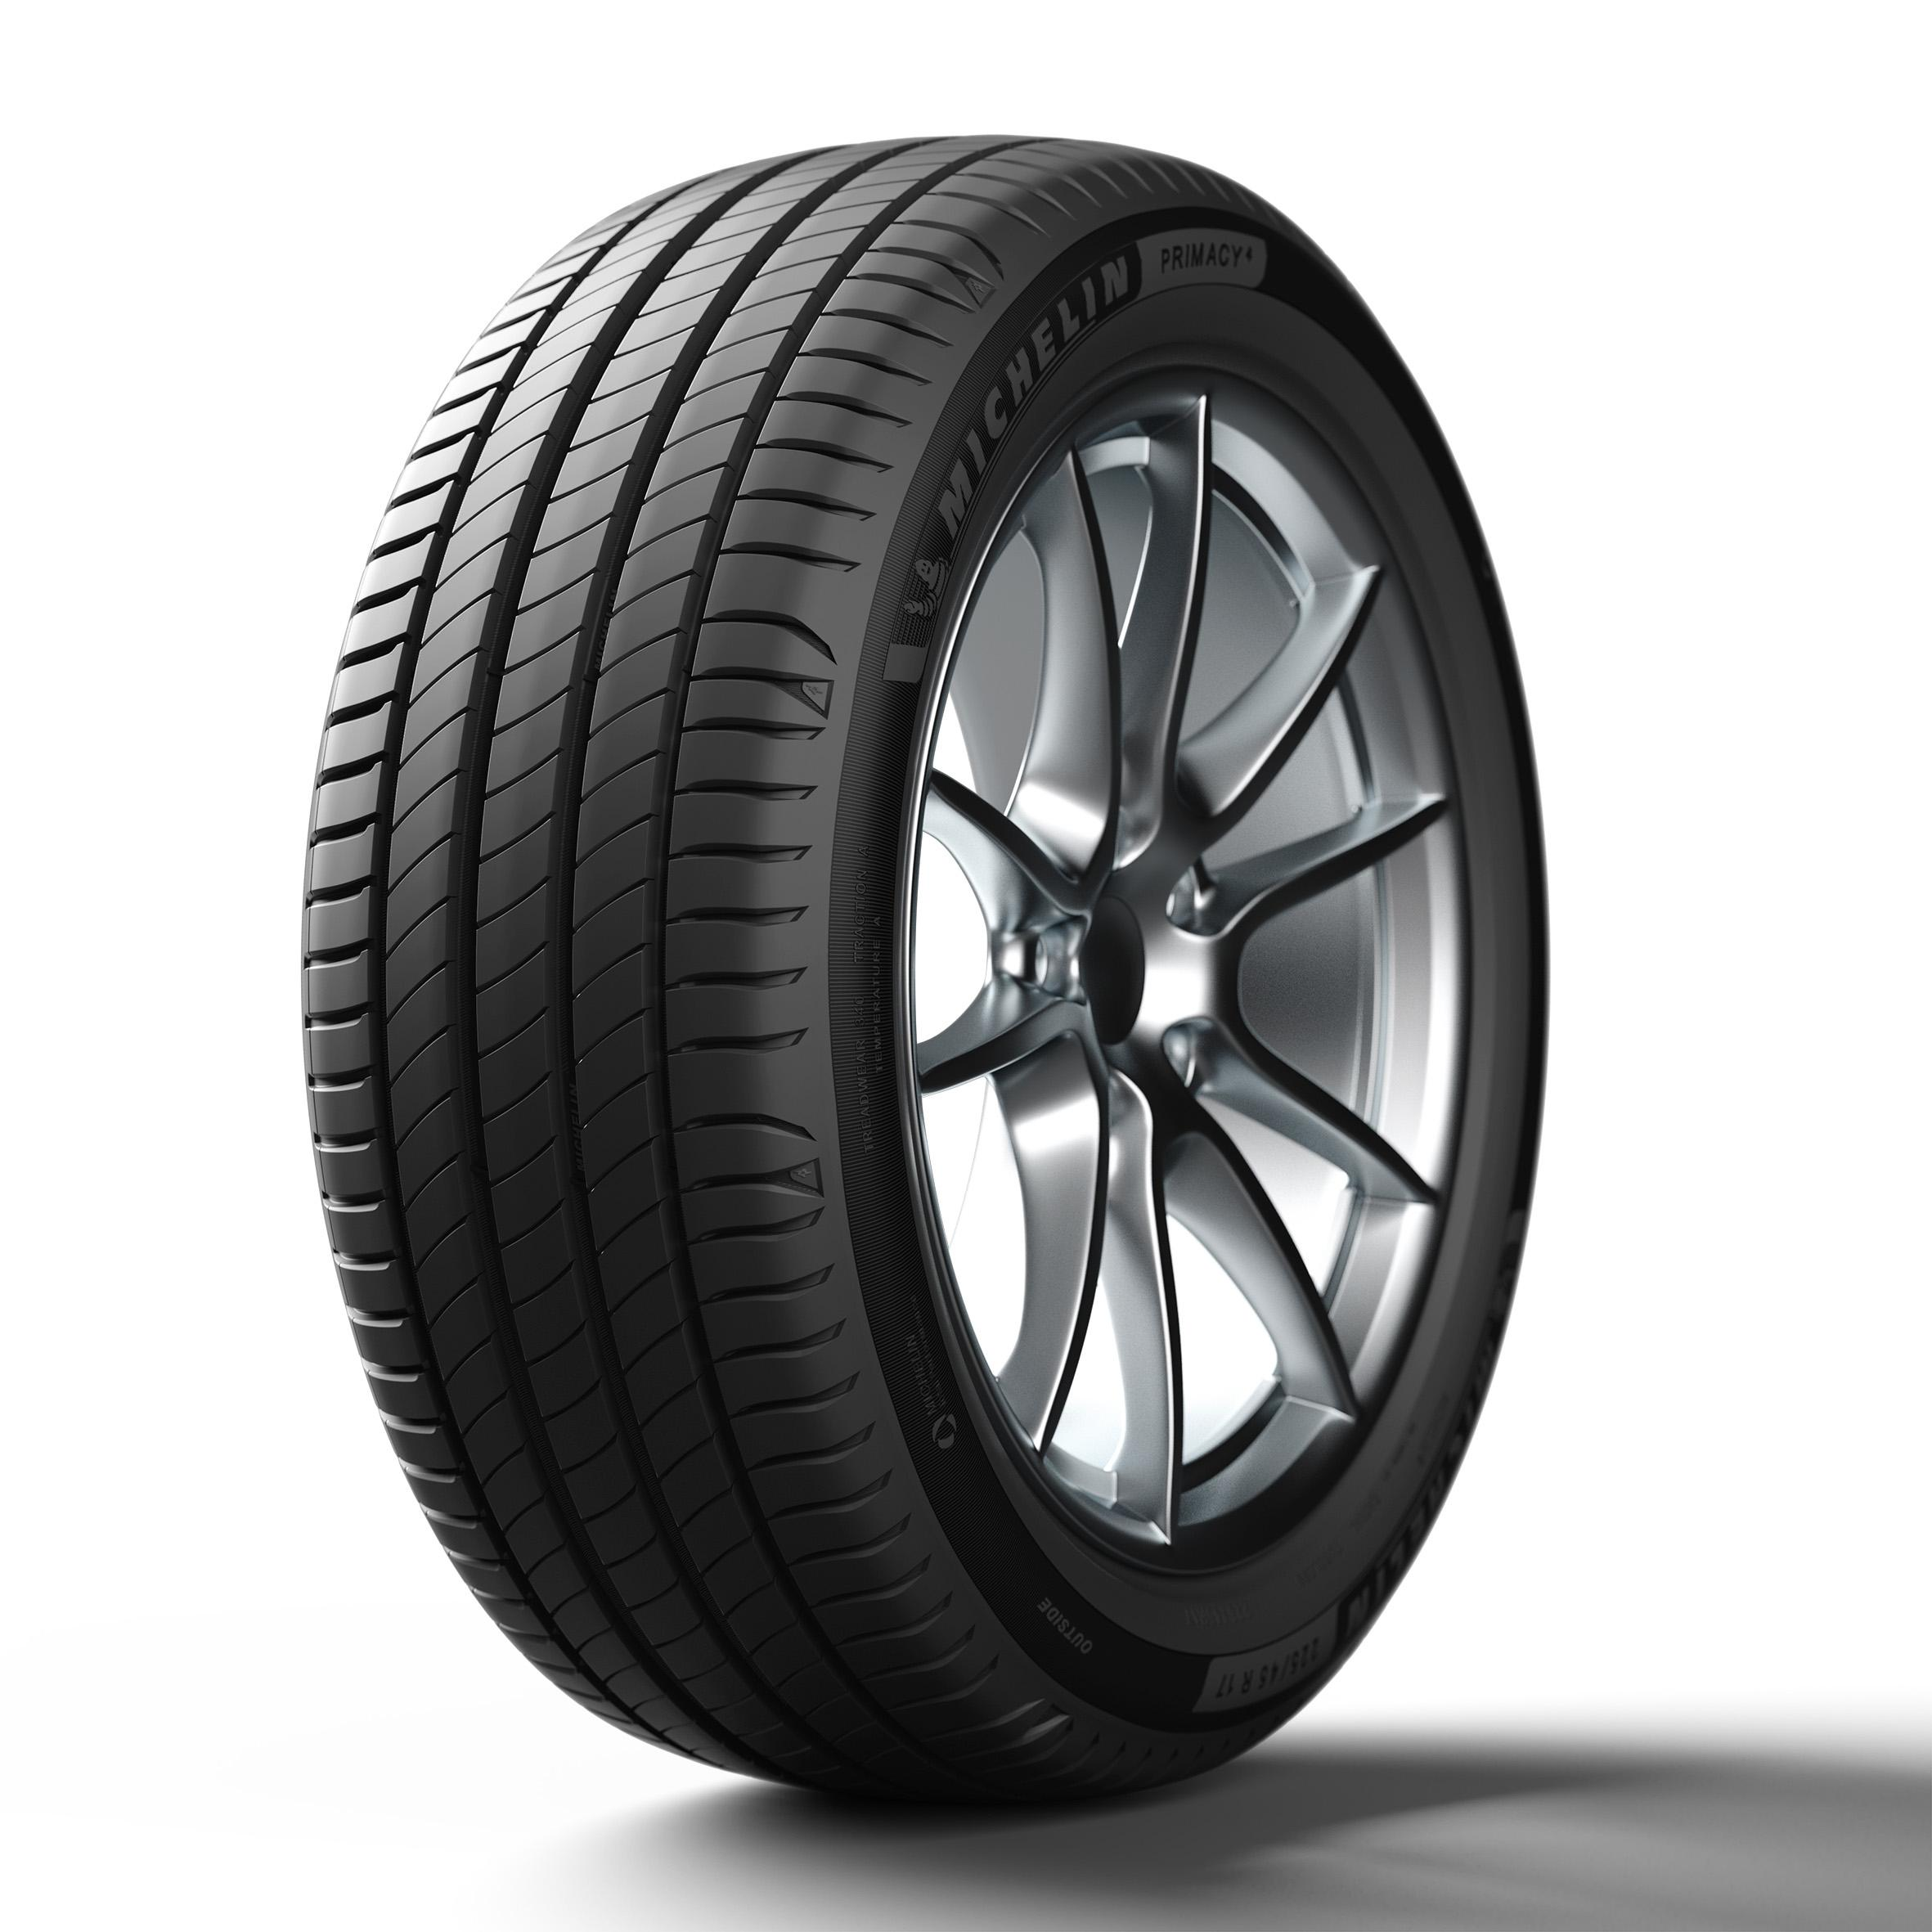 Anvelopa vara MICHELIN PRIMACY 4 215/55 RR18 99V